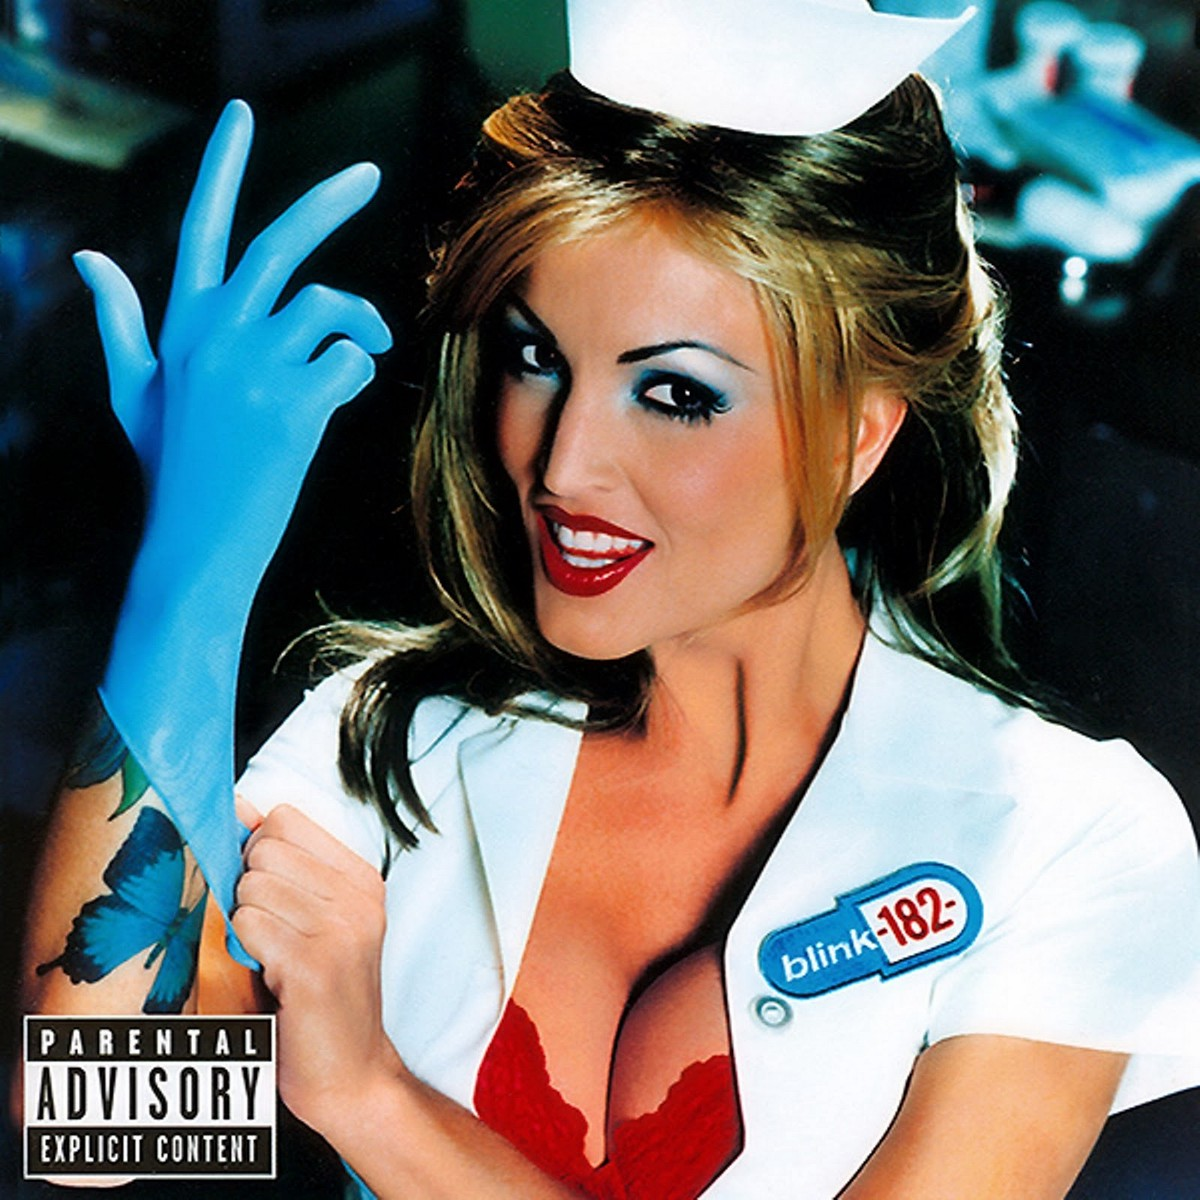 ENEMA OF THE STATE BLINK 182